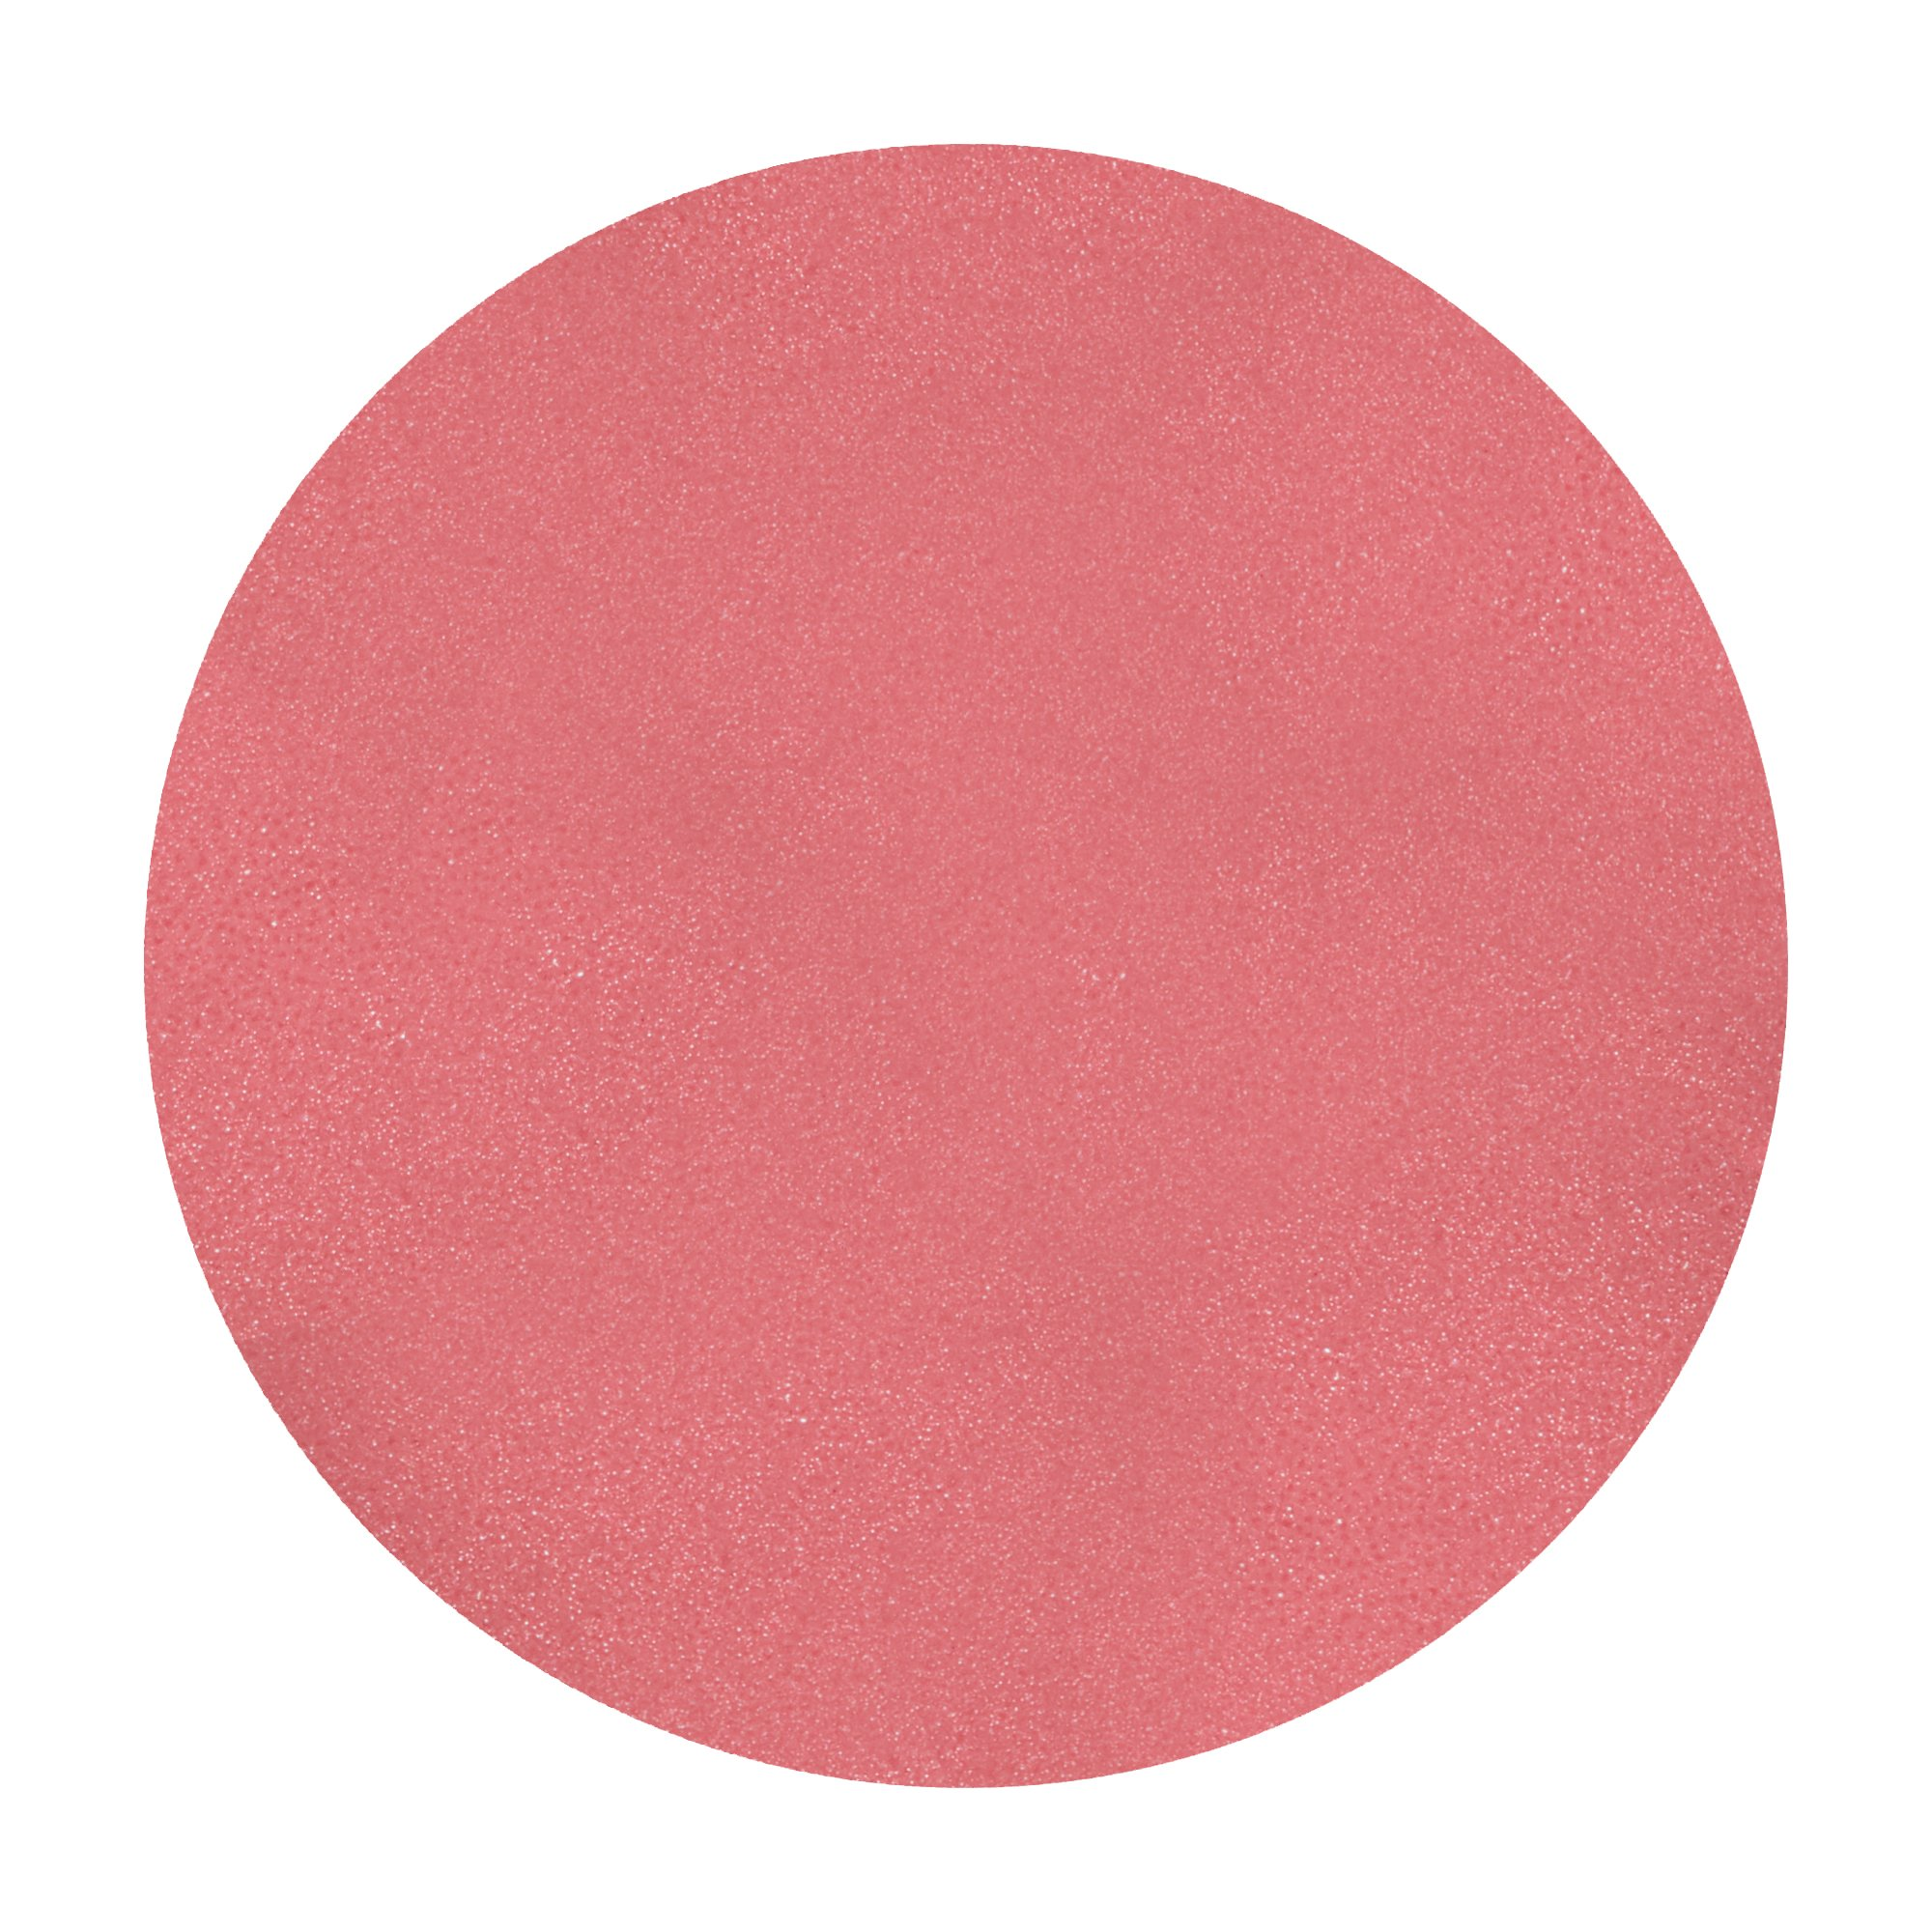 Miracle Touch Creamy Blush No. 14 Soft Pink by Max Factor for Women - 11.5 gram Blush by Max Factor (Image #7)